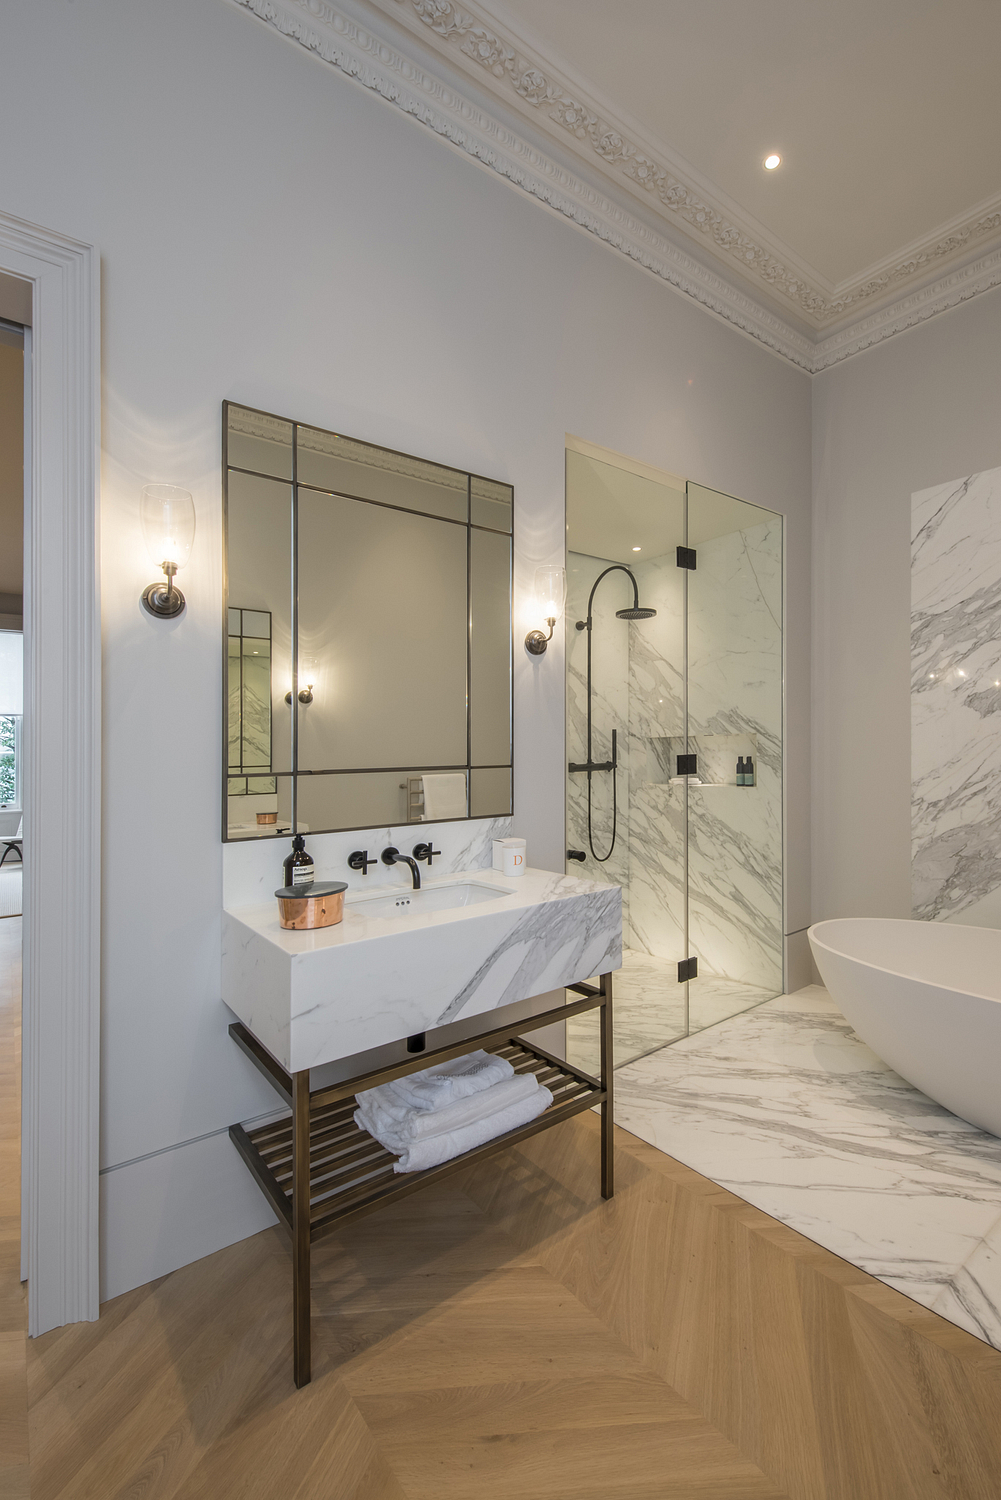 Ensuite detail with marble and parquet contrast, London